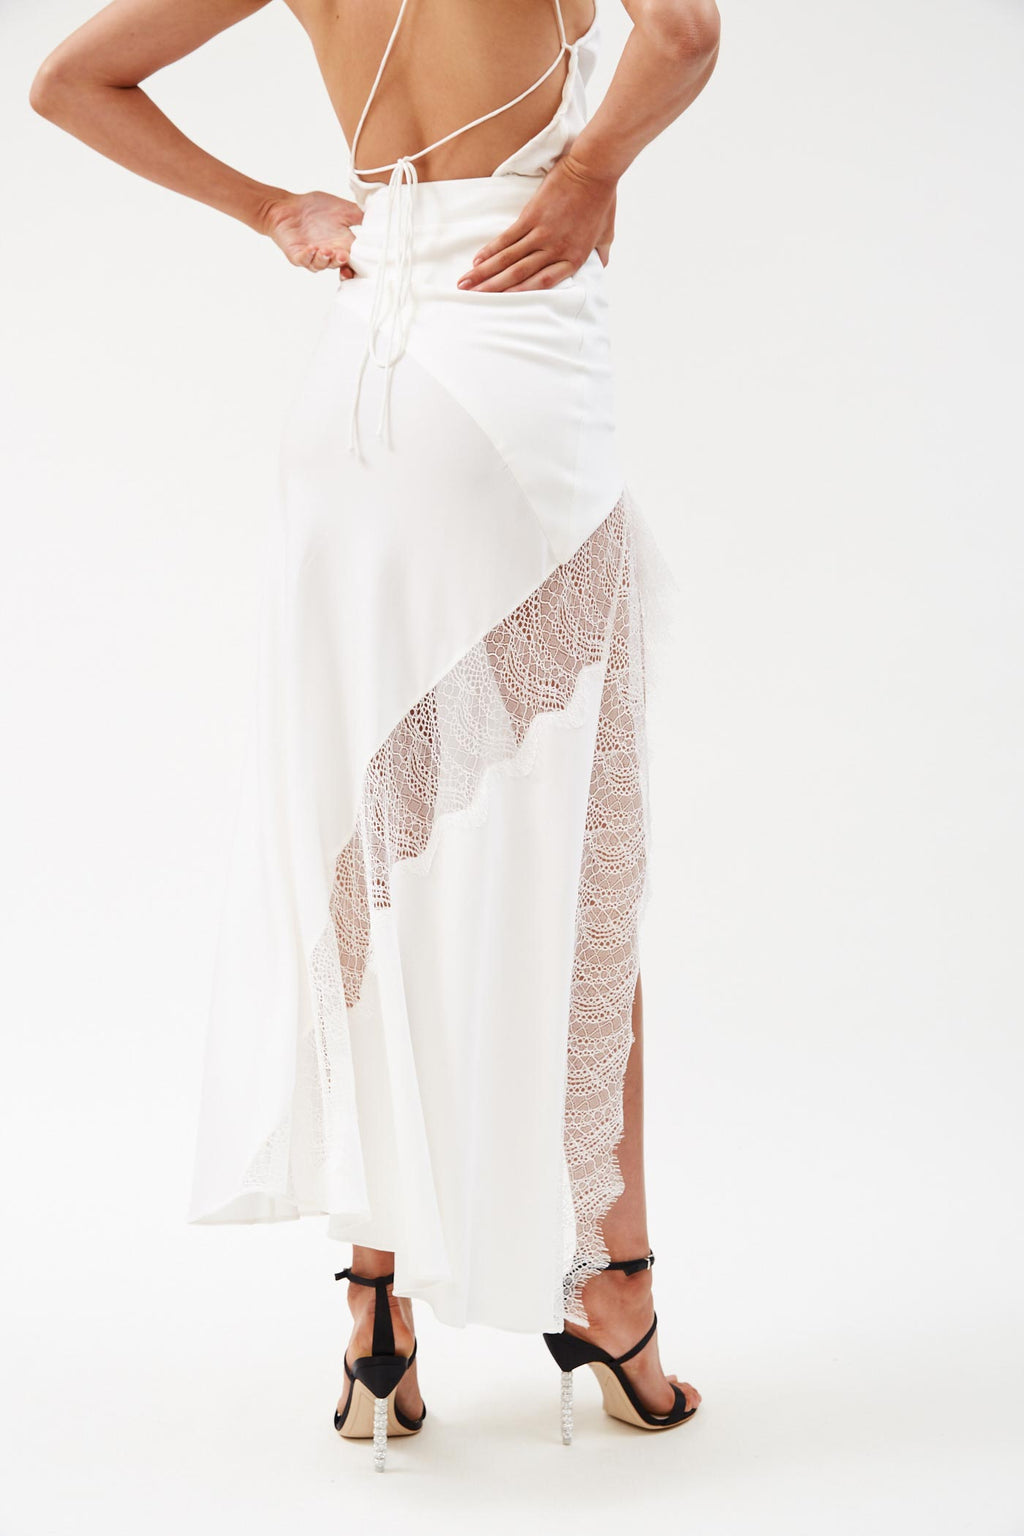 Lace Split White Skirt